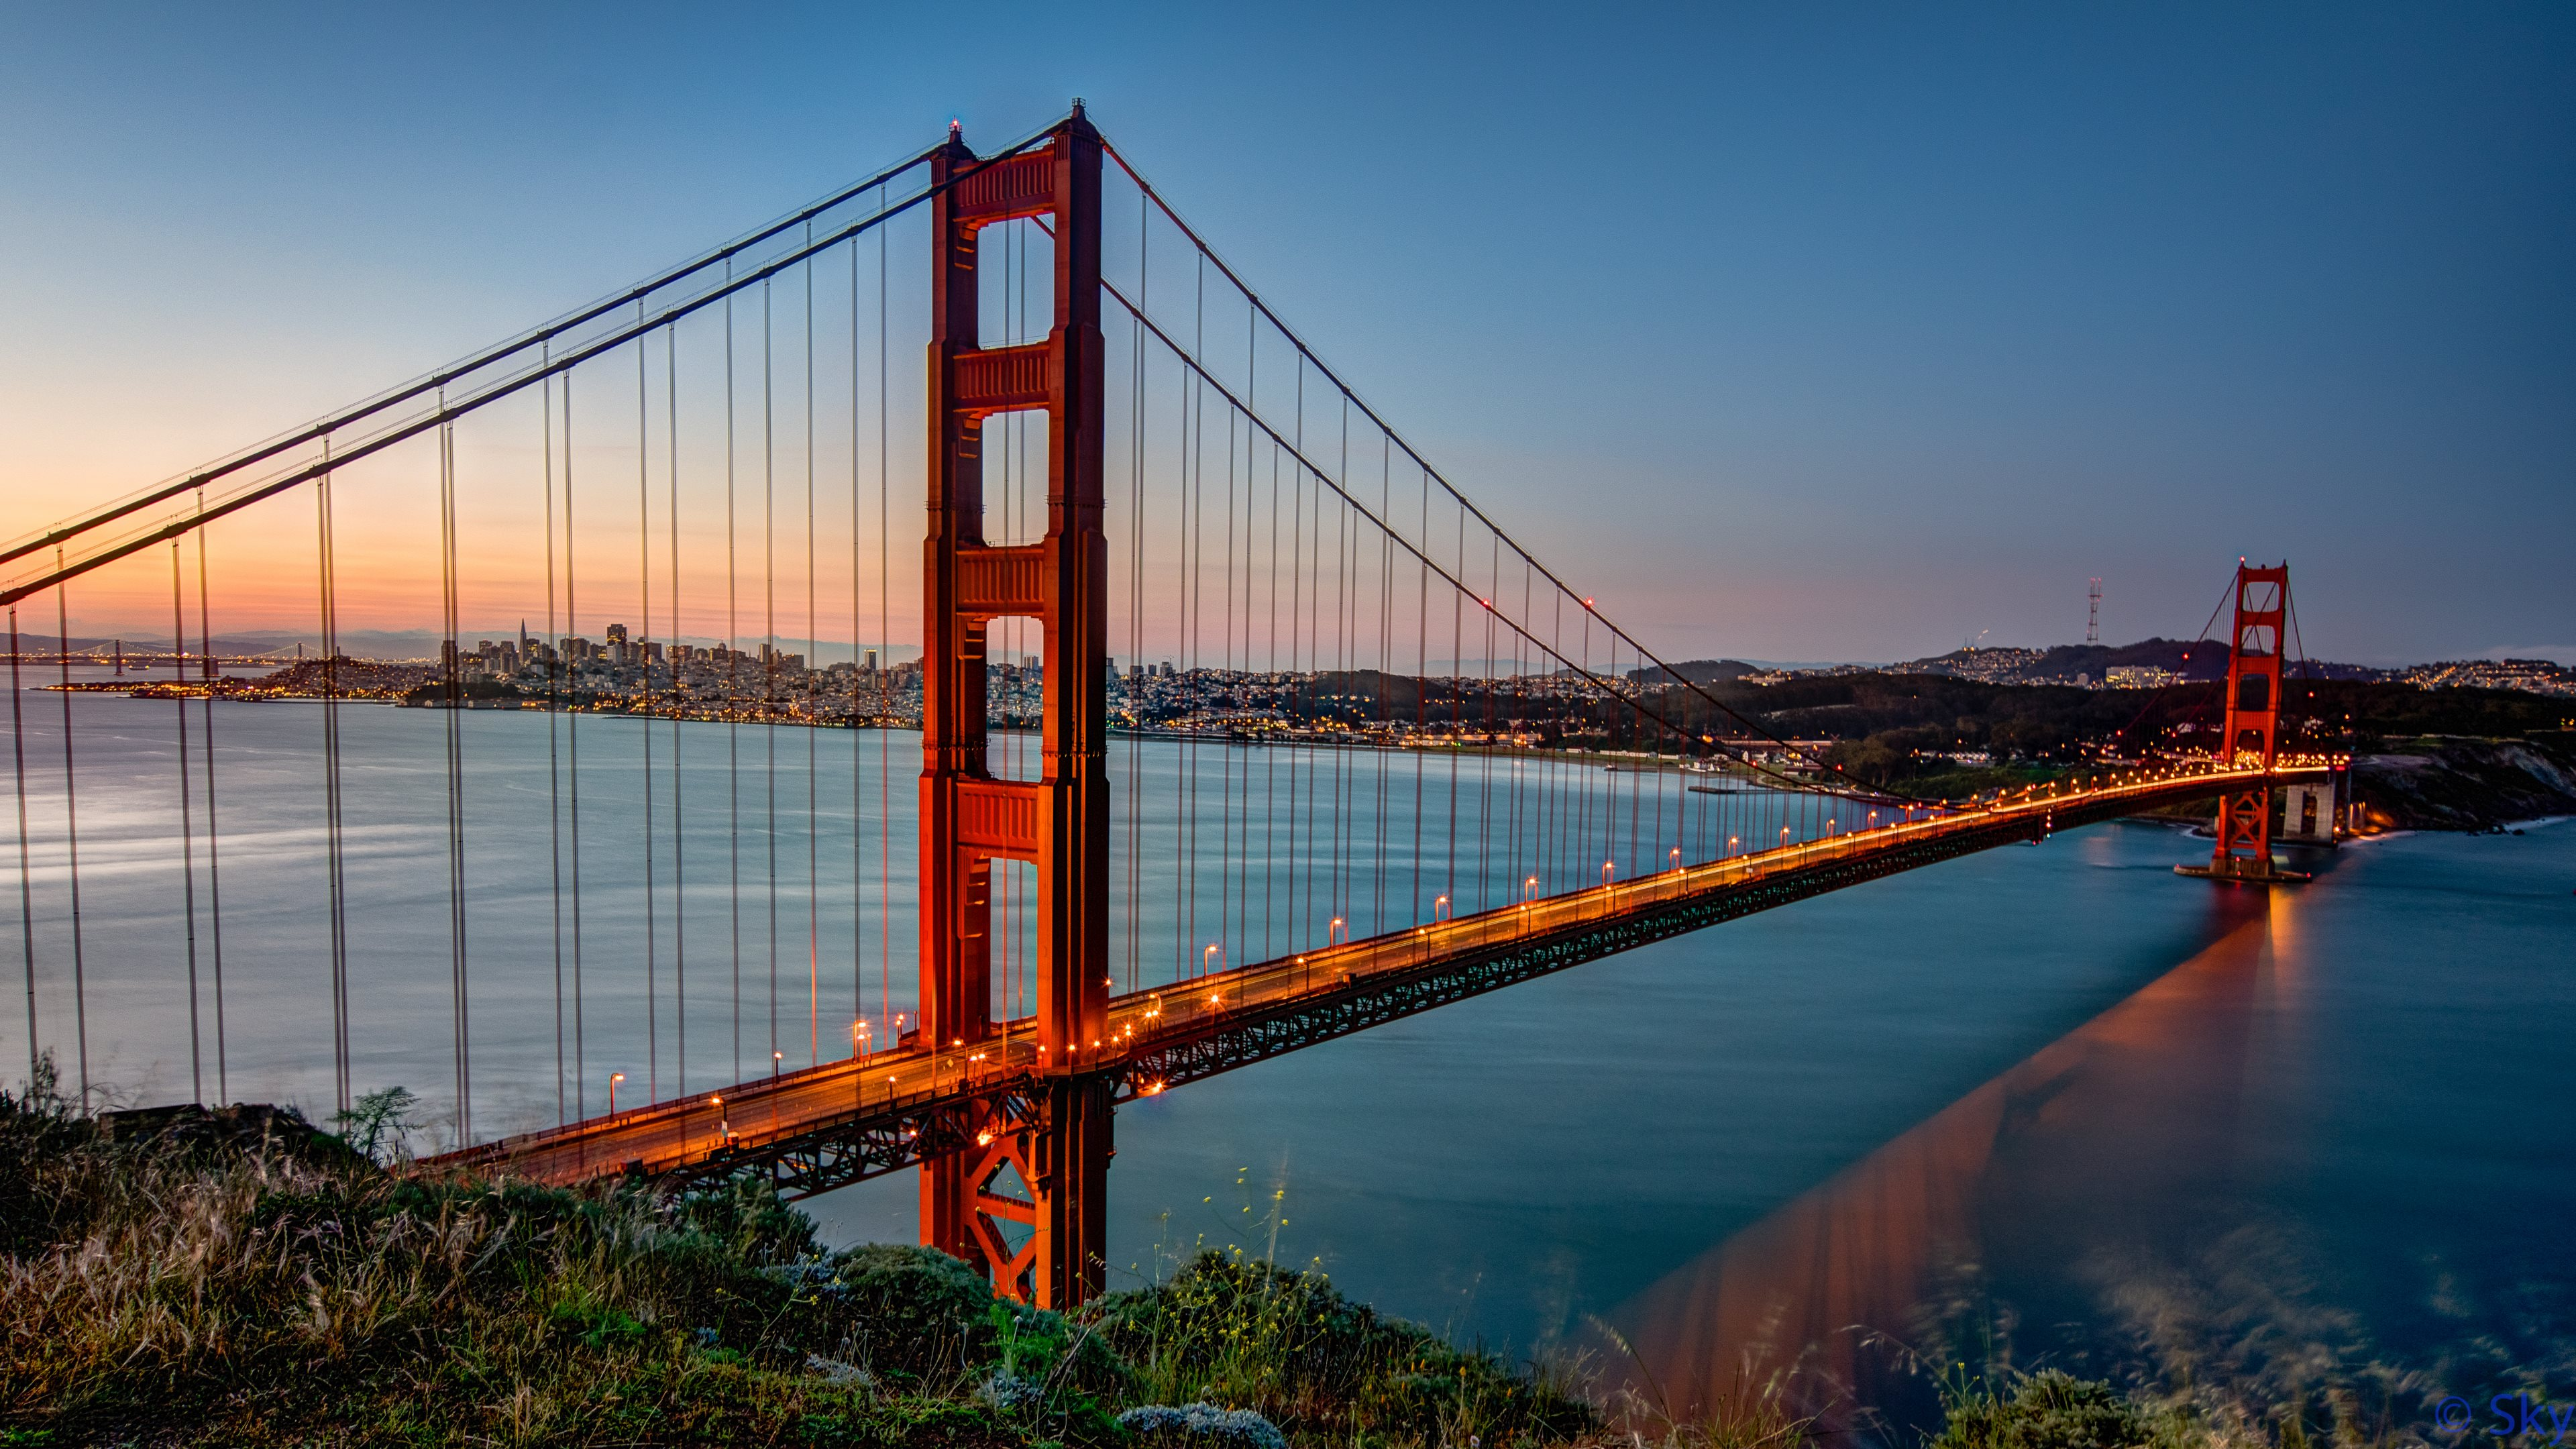 sunrise pictures golden gate - HD3840×2160